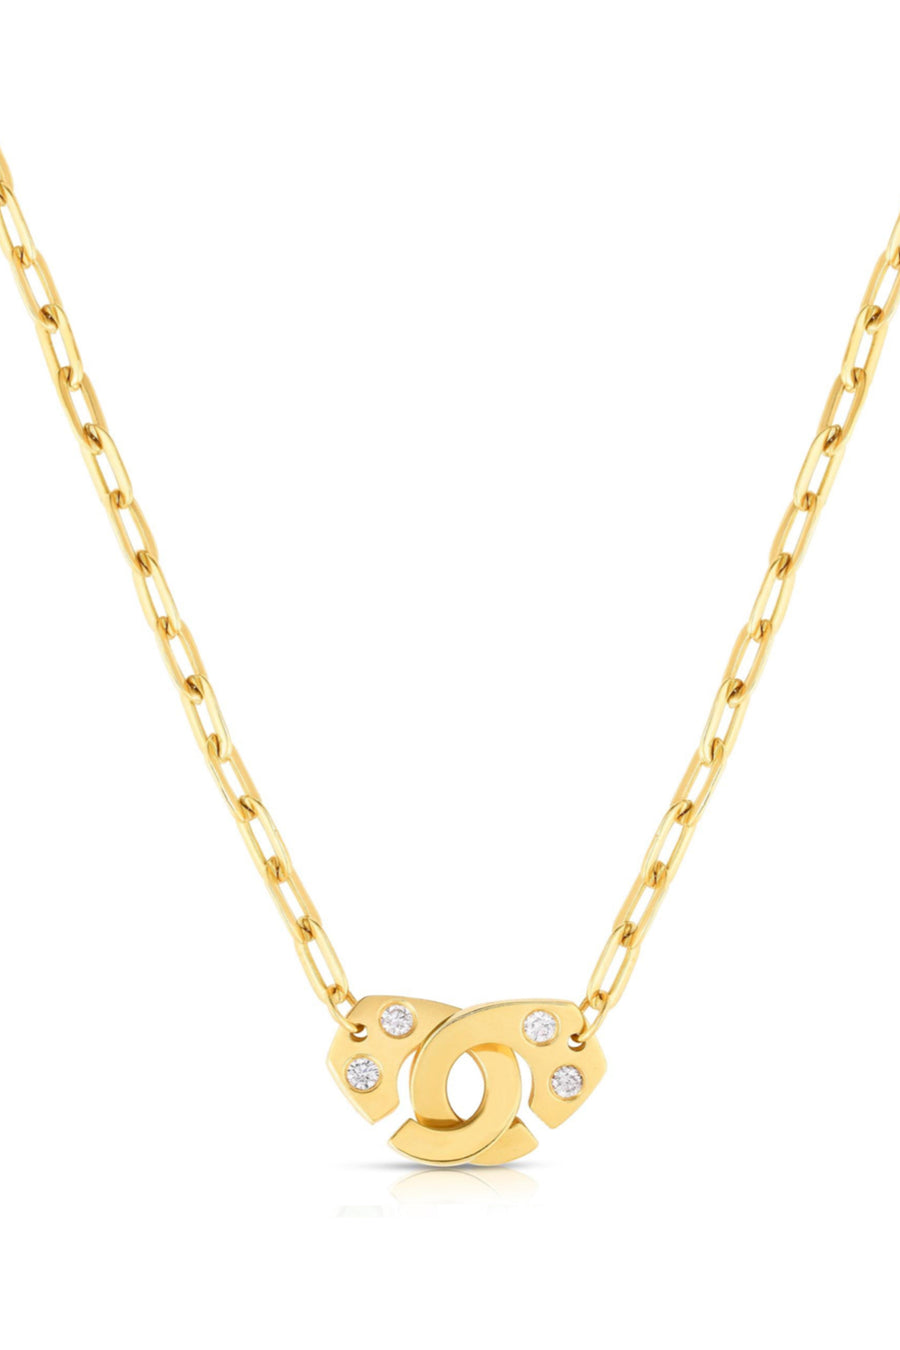 18K Gold W Diamond Clasp Necklace